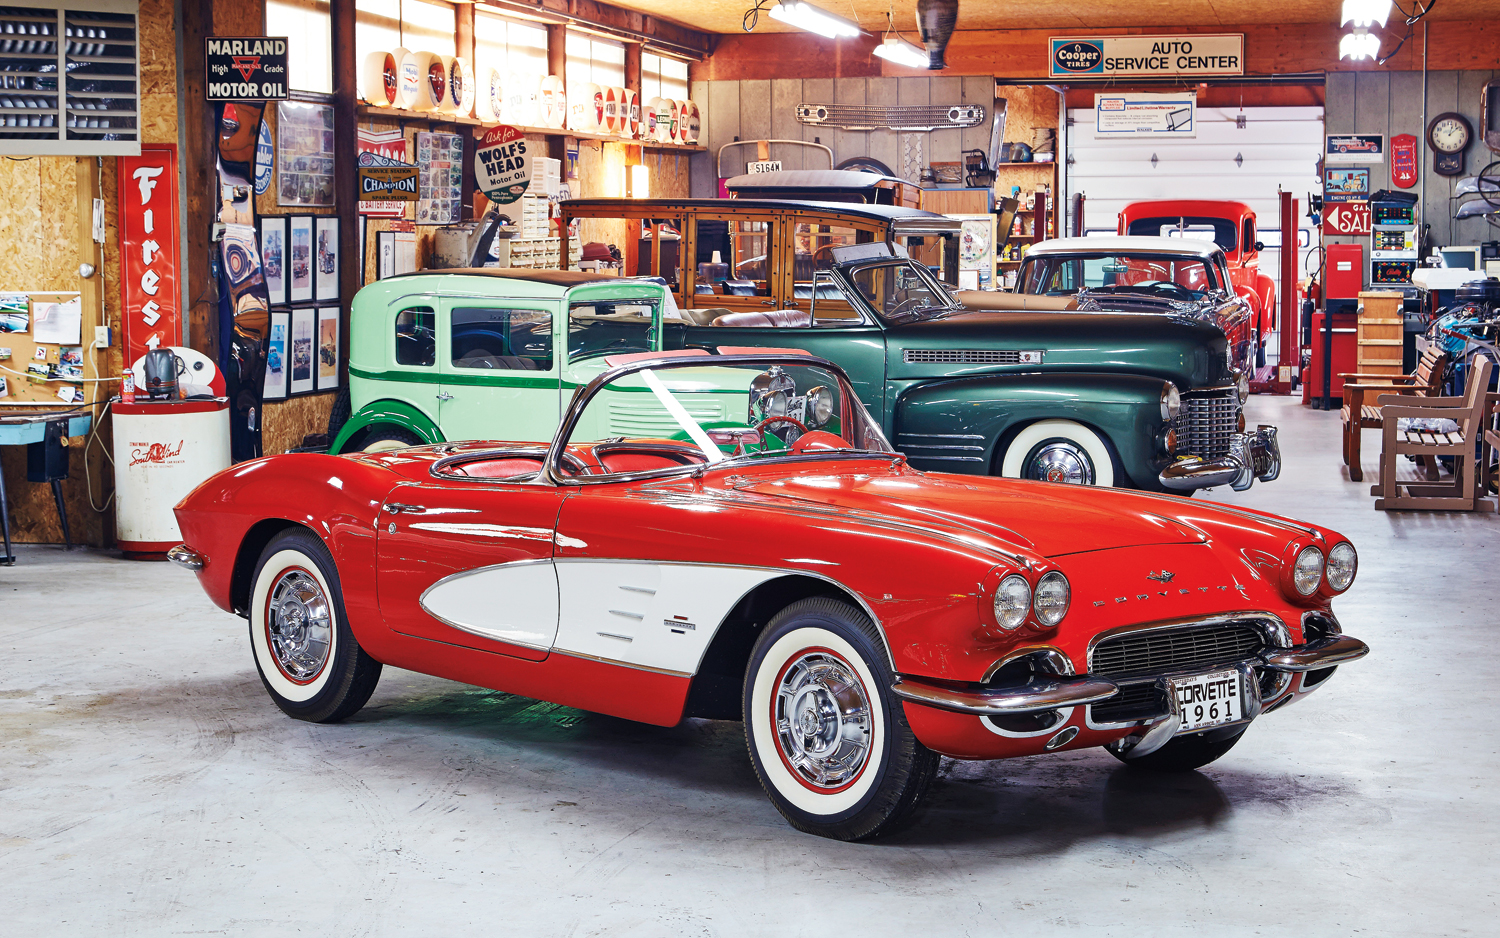 TOTD: What Classic Car Would You Daily Drive?